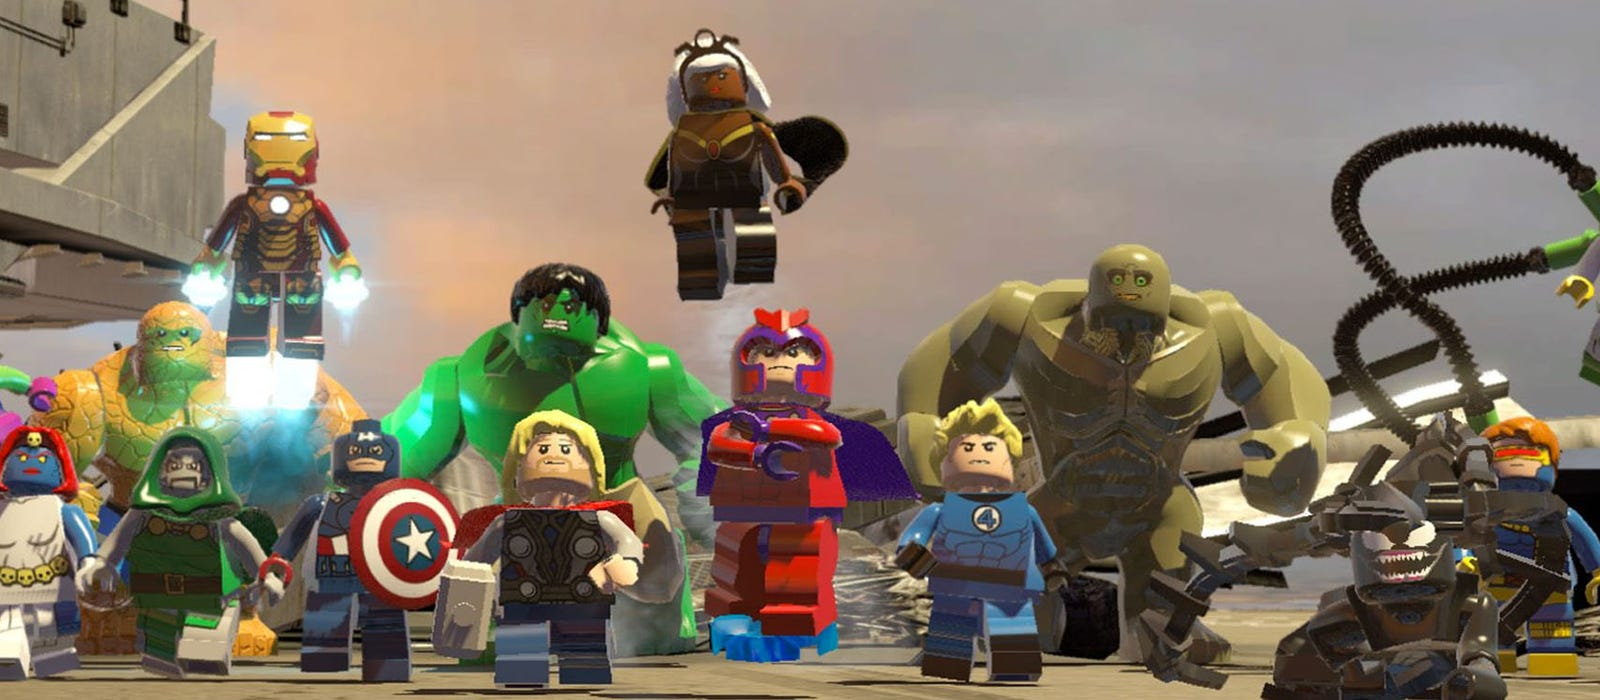 Lego version of the Marvel characters